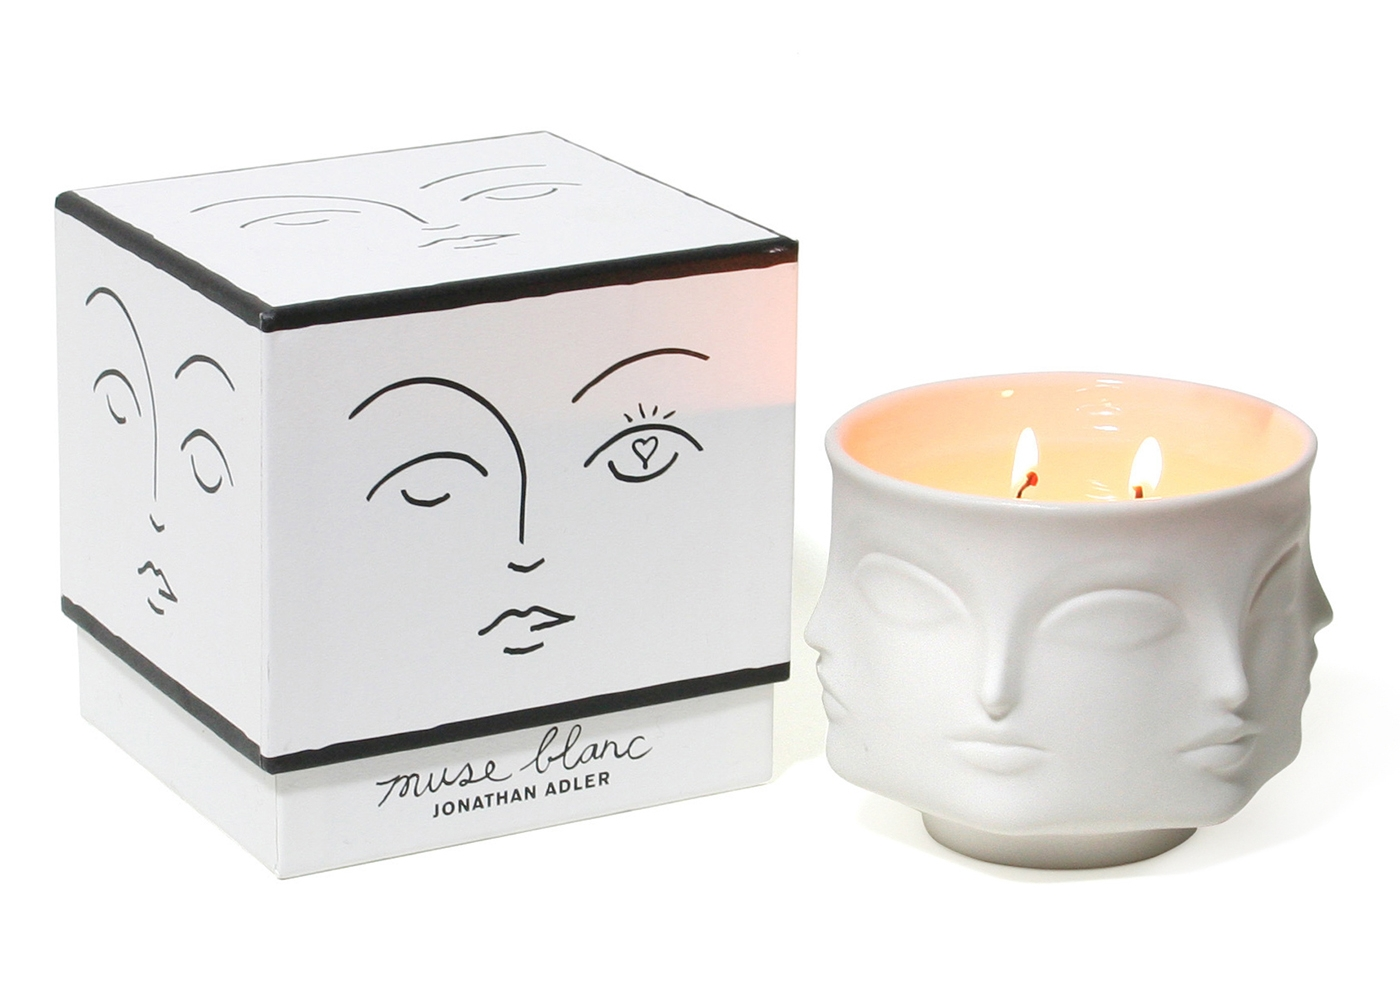 Jonathan Adler, Muse blanc ceramic candle , $78  When this crisp, floral candle burns out, I'm going to repurpose it as a vase. Two gifts for the price of one!